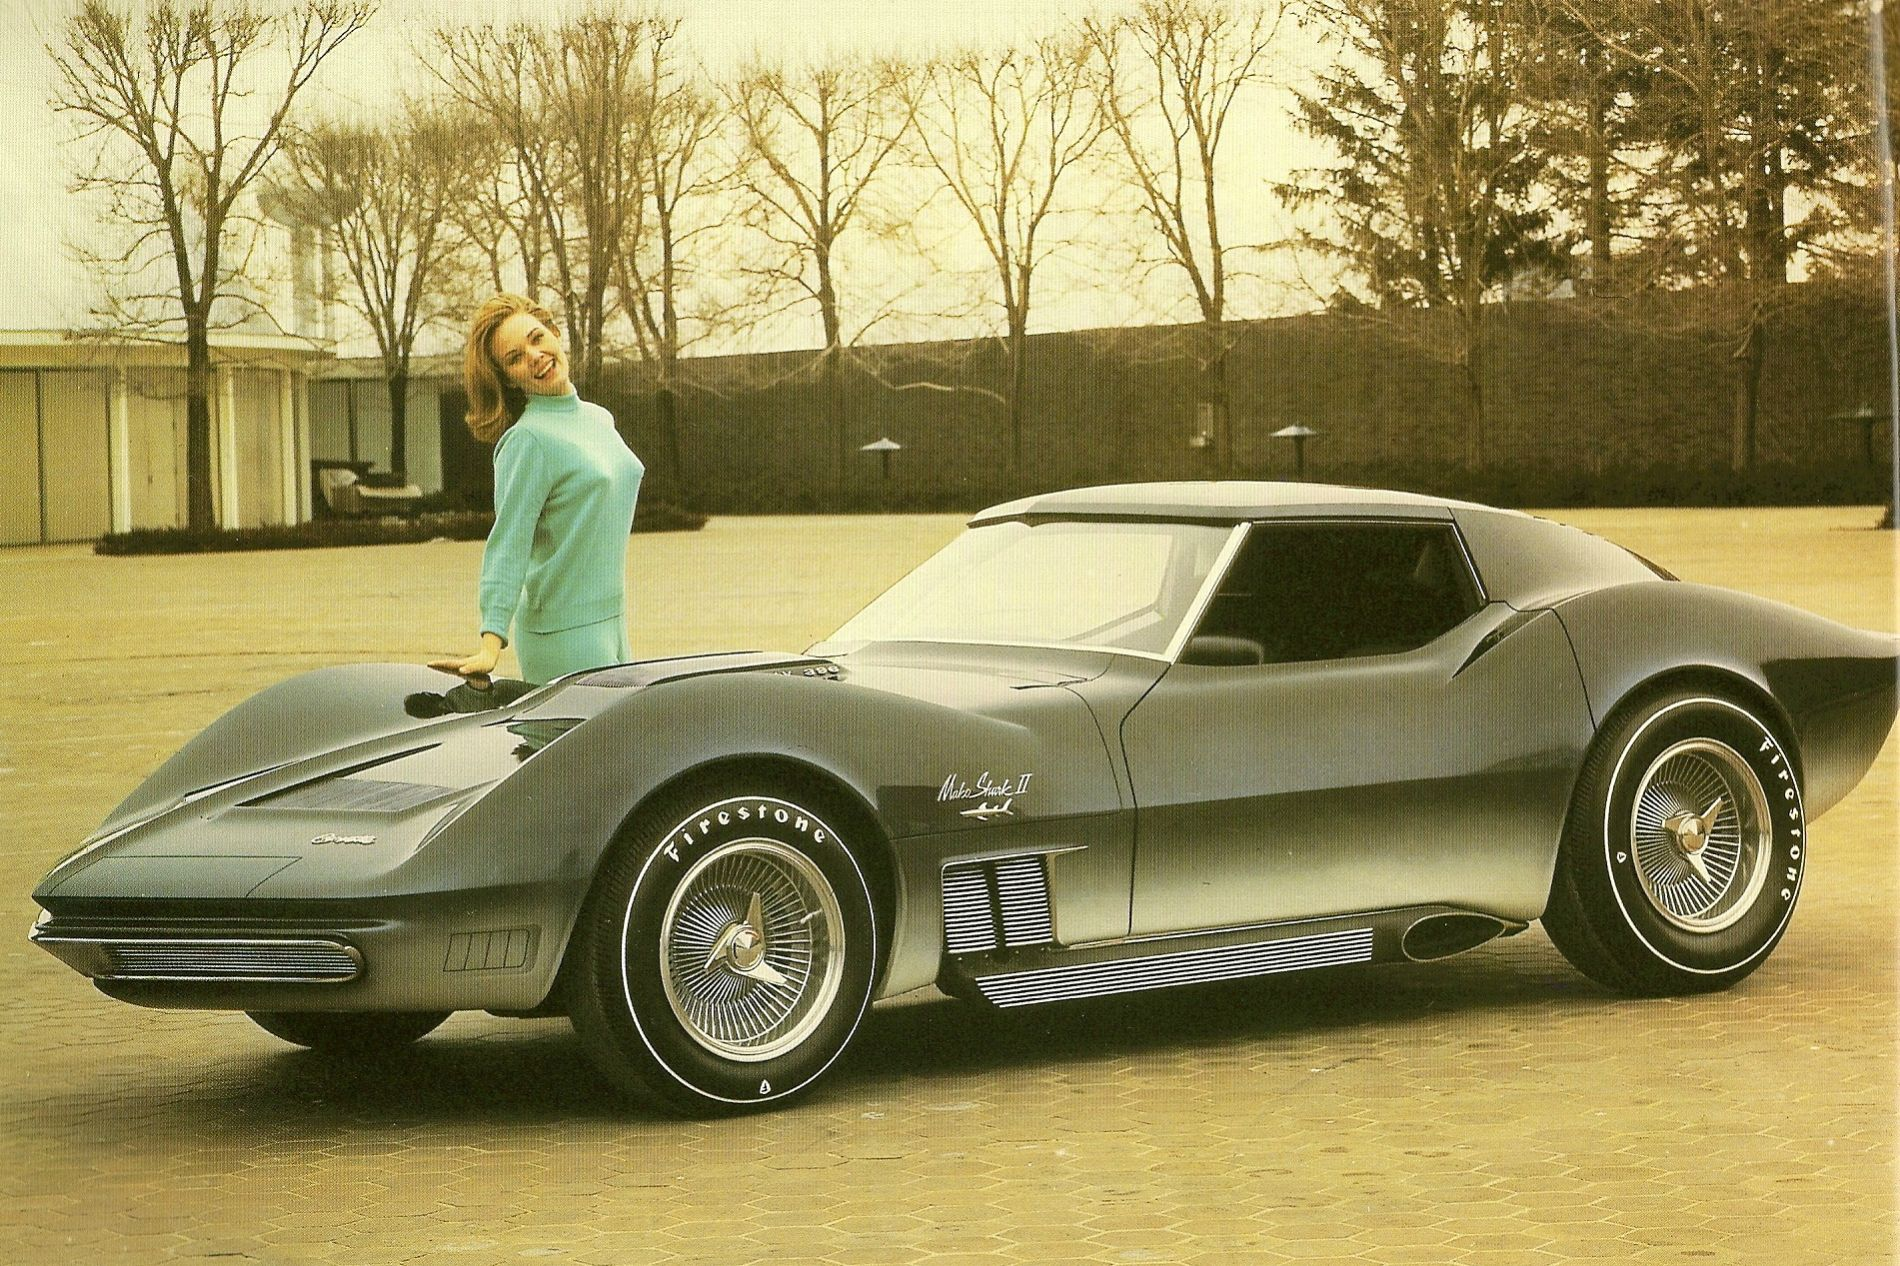 A Corvette Mako Shark II, 1965. https://t.co/GsB2unAix5